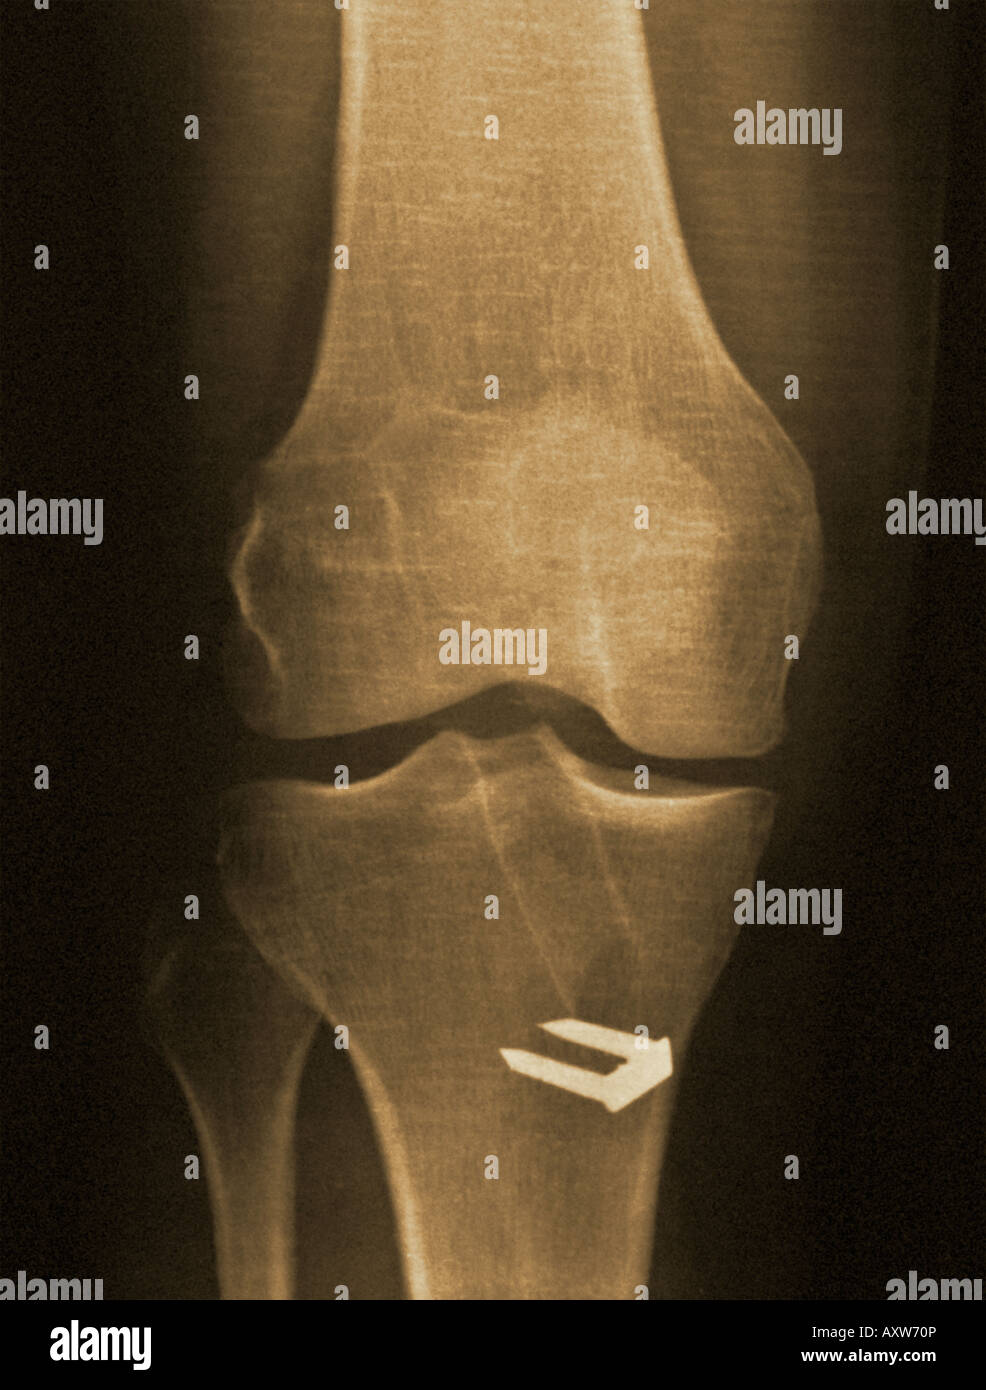 x-ray of the knee of a man who had surgery to repair a ruptured anterior cruciate ligament. - Stock Image